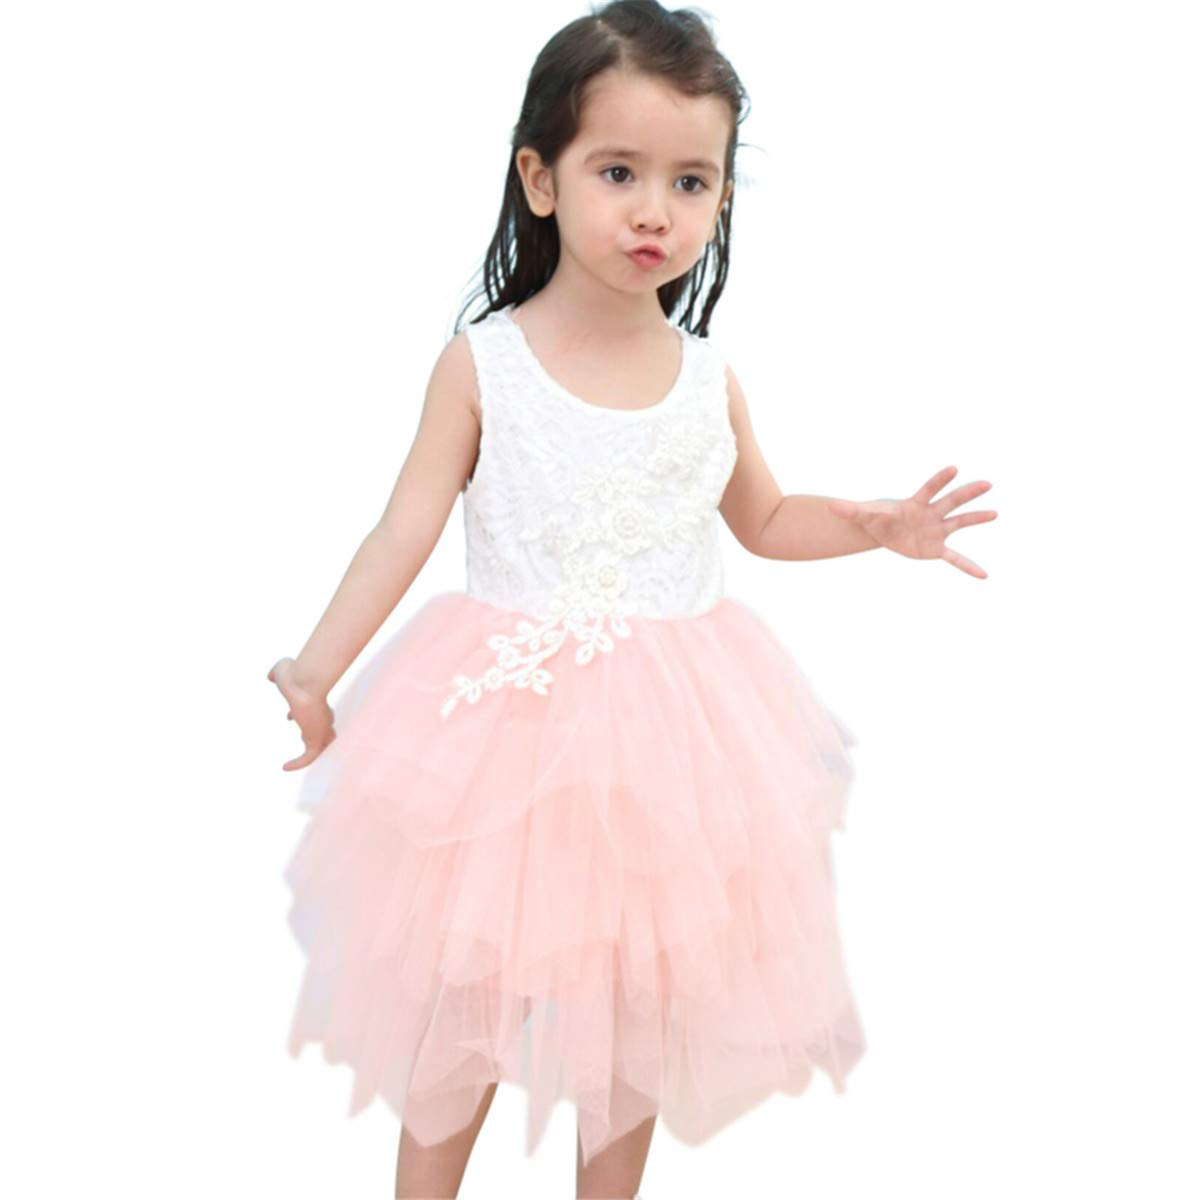 866e12ff13a Amazon.com  Titanos Little Girls Lace Backless Dress Baby Flower Girl  Princess Lace Back Tutu A-line Party Dresses  Clothing